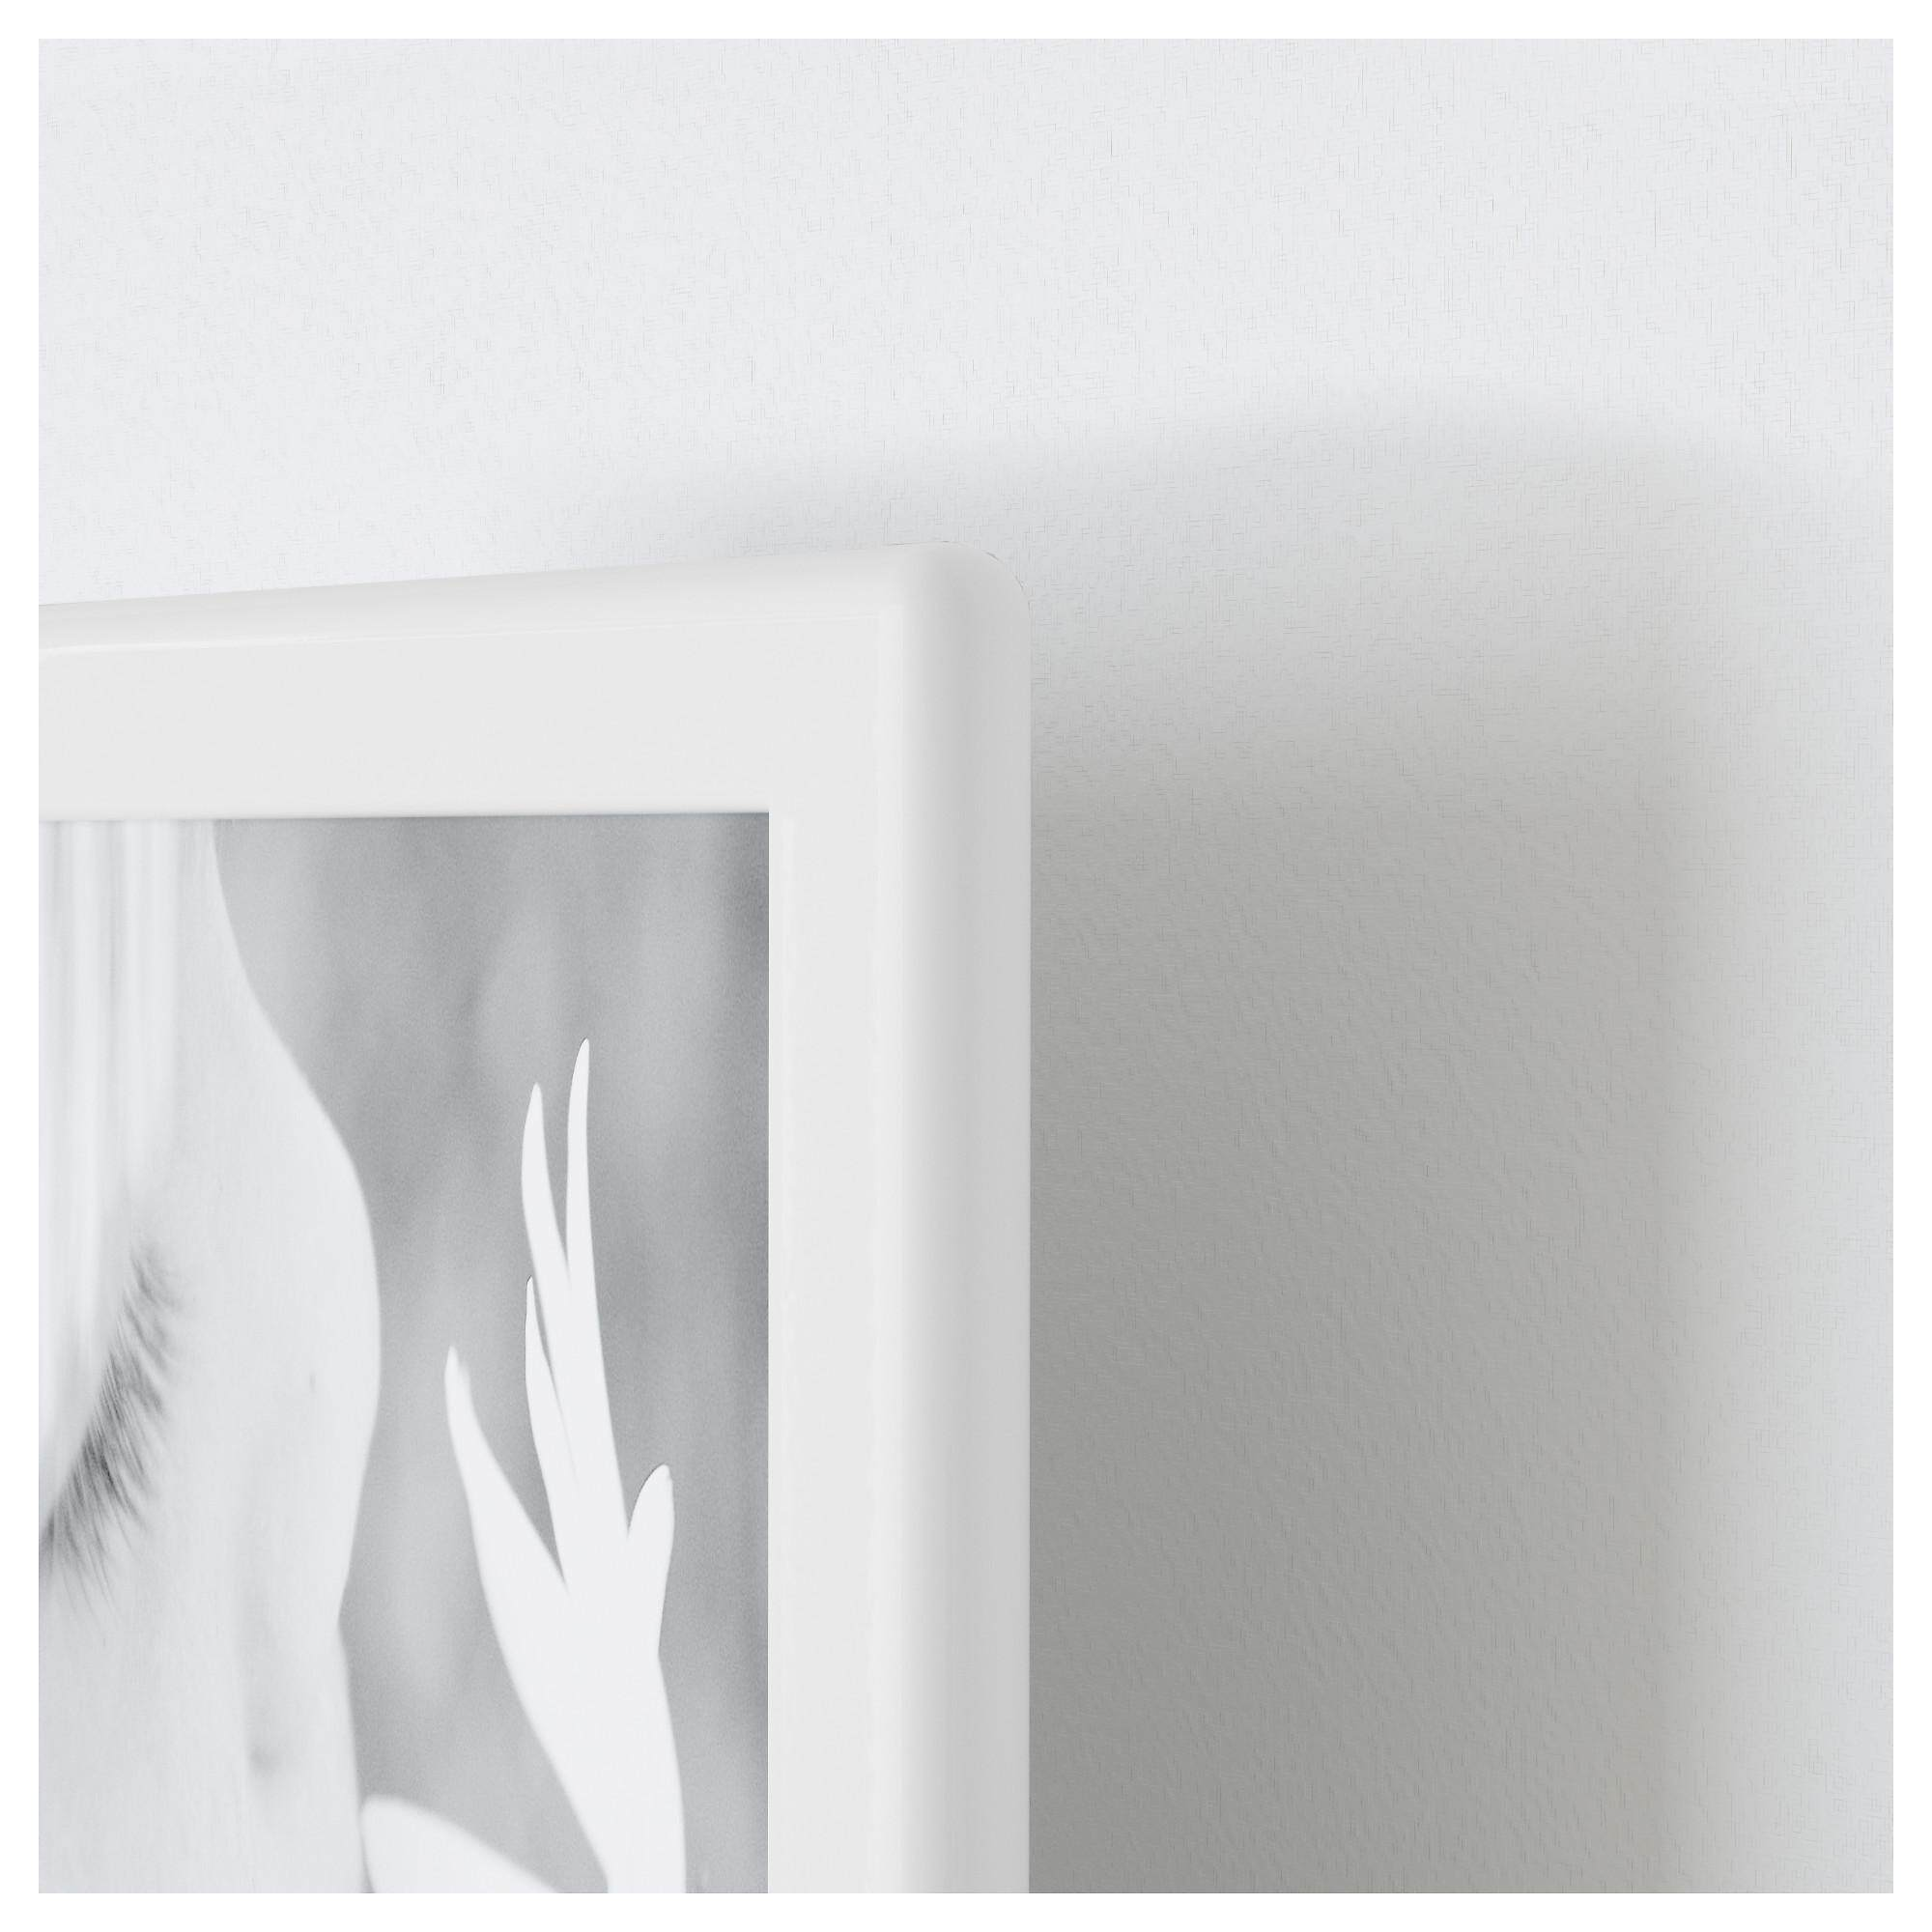 Ikea Tolsby Photo Frame Of 2 Picture (White)  3